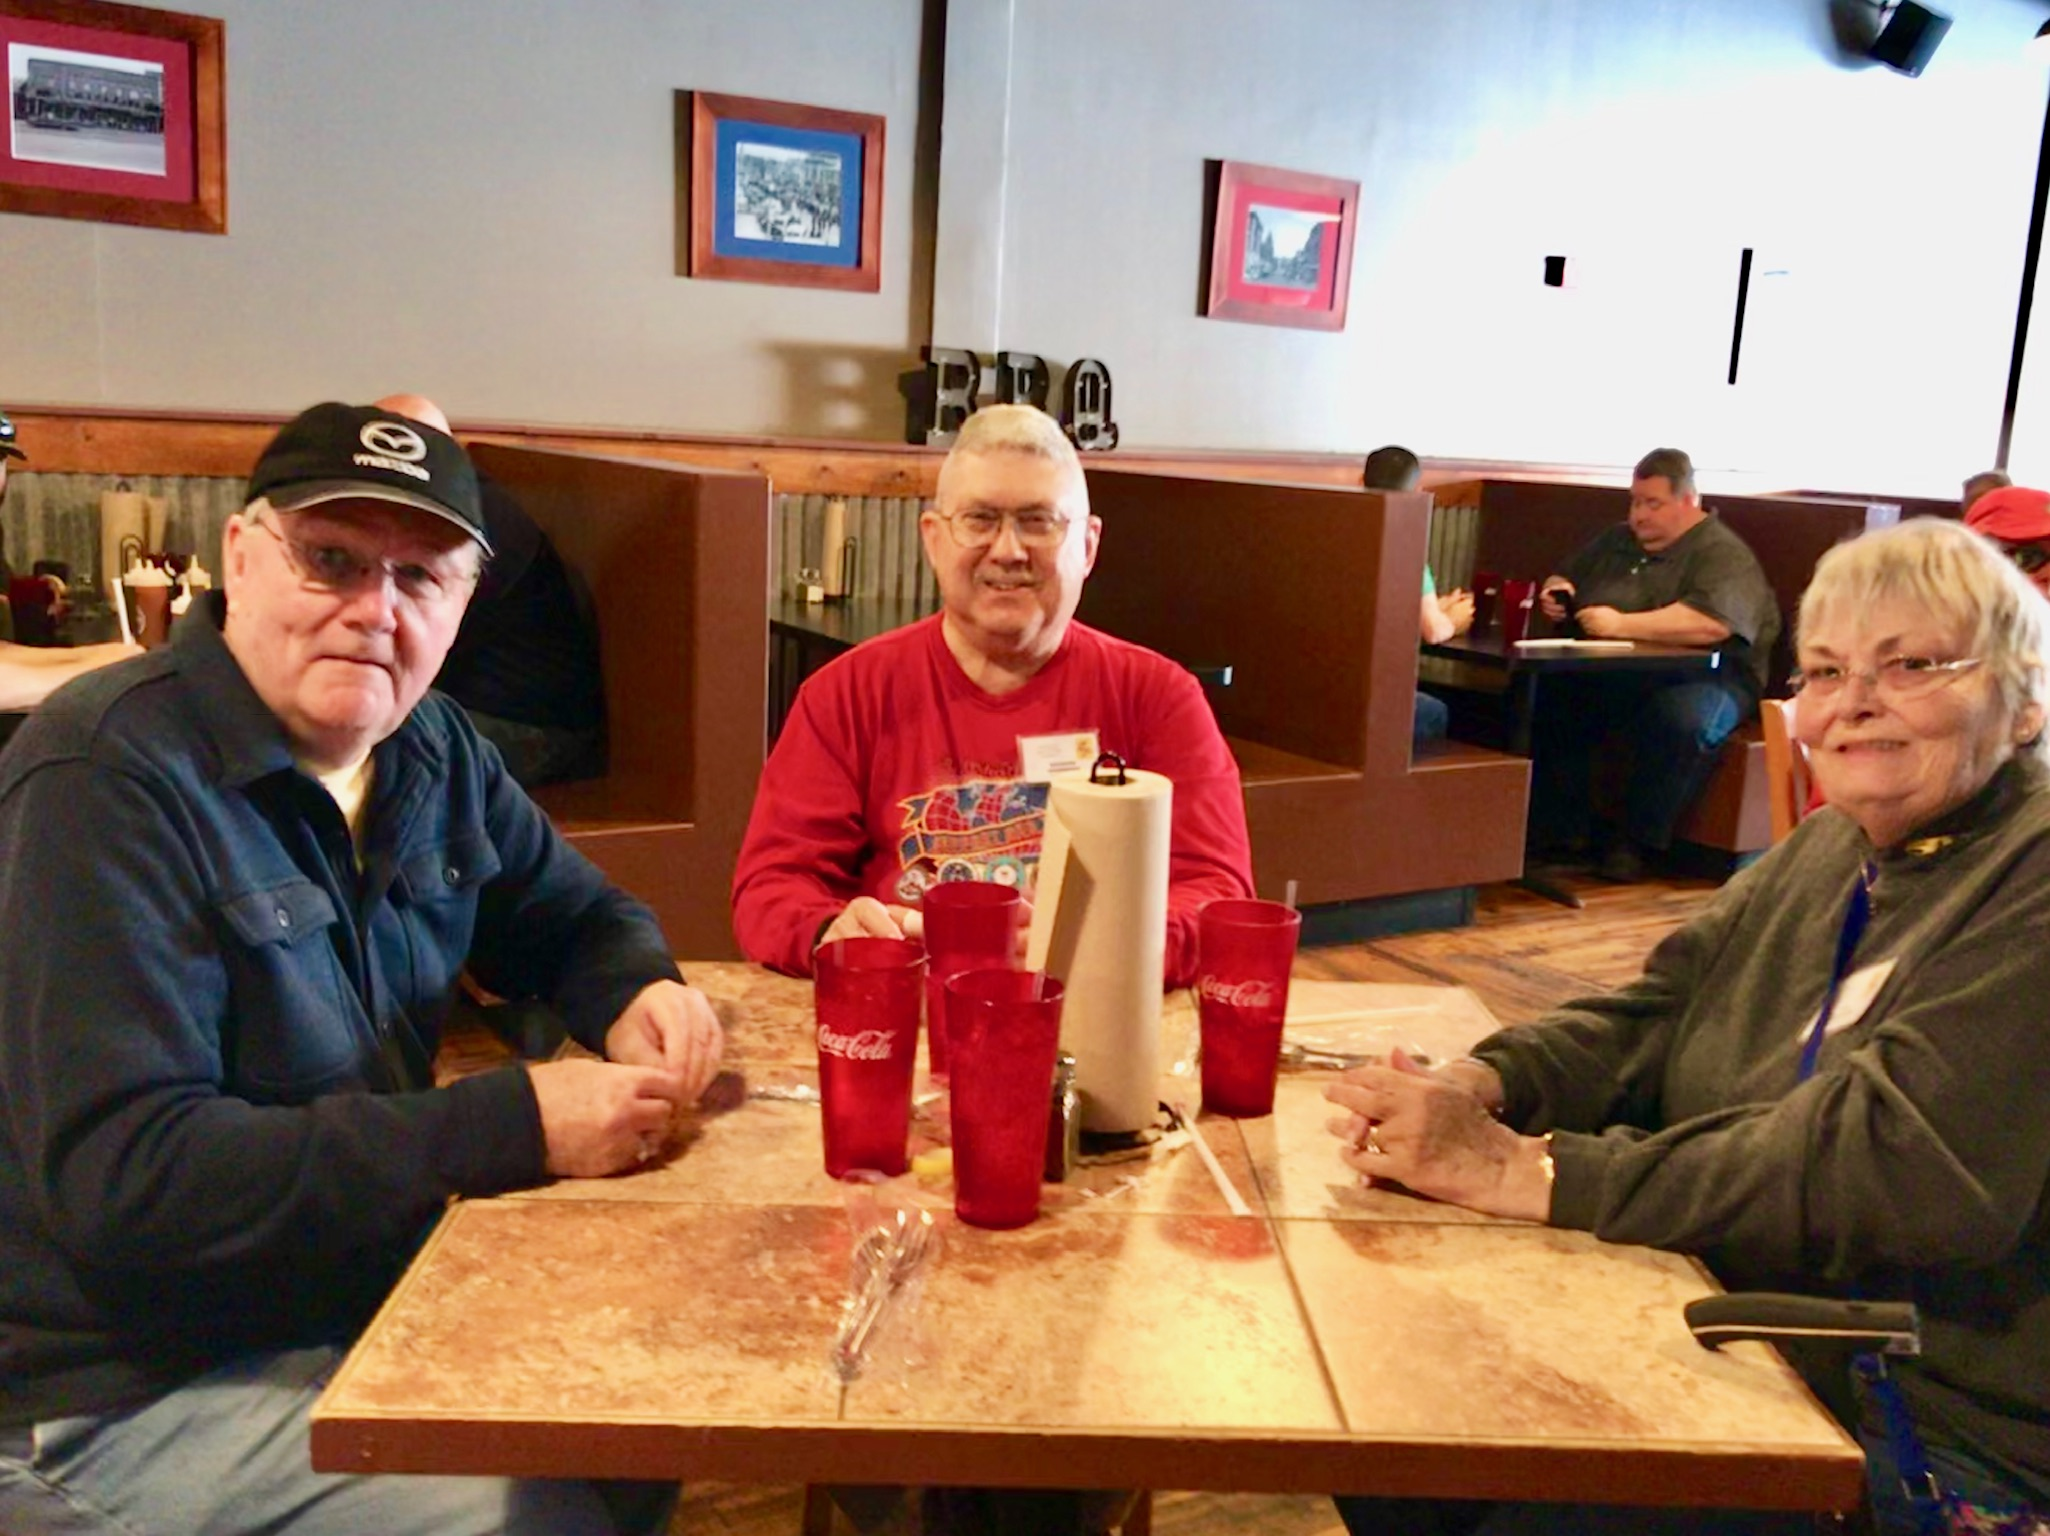 Lunch at Wolfe's BBQ. From left: Jim Pickett, Richard Anderson, and Ann Anderson.